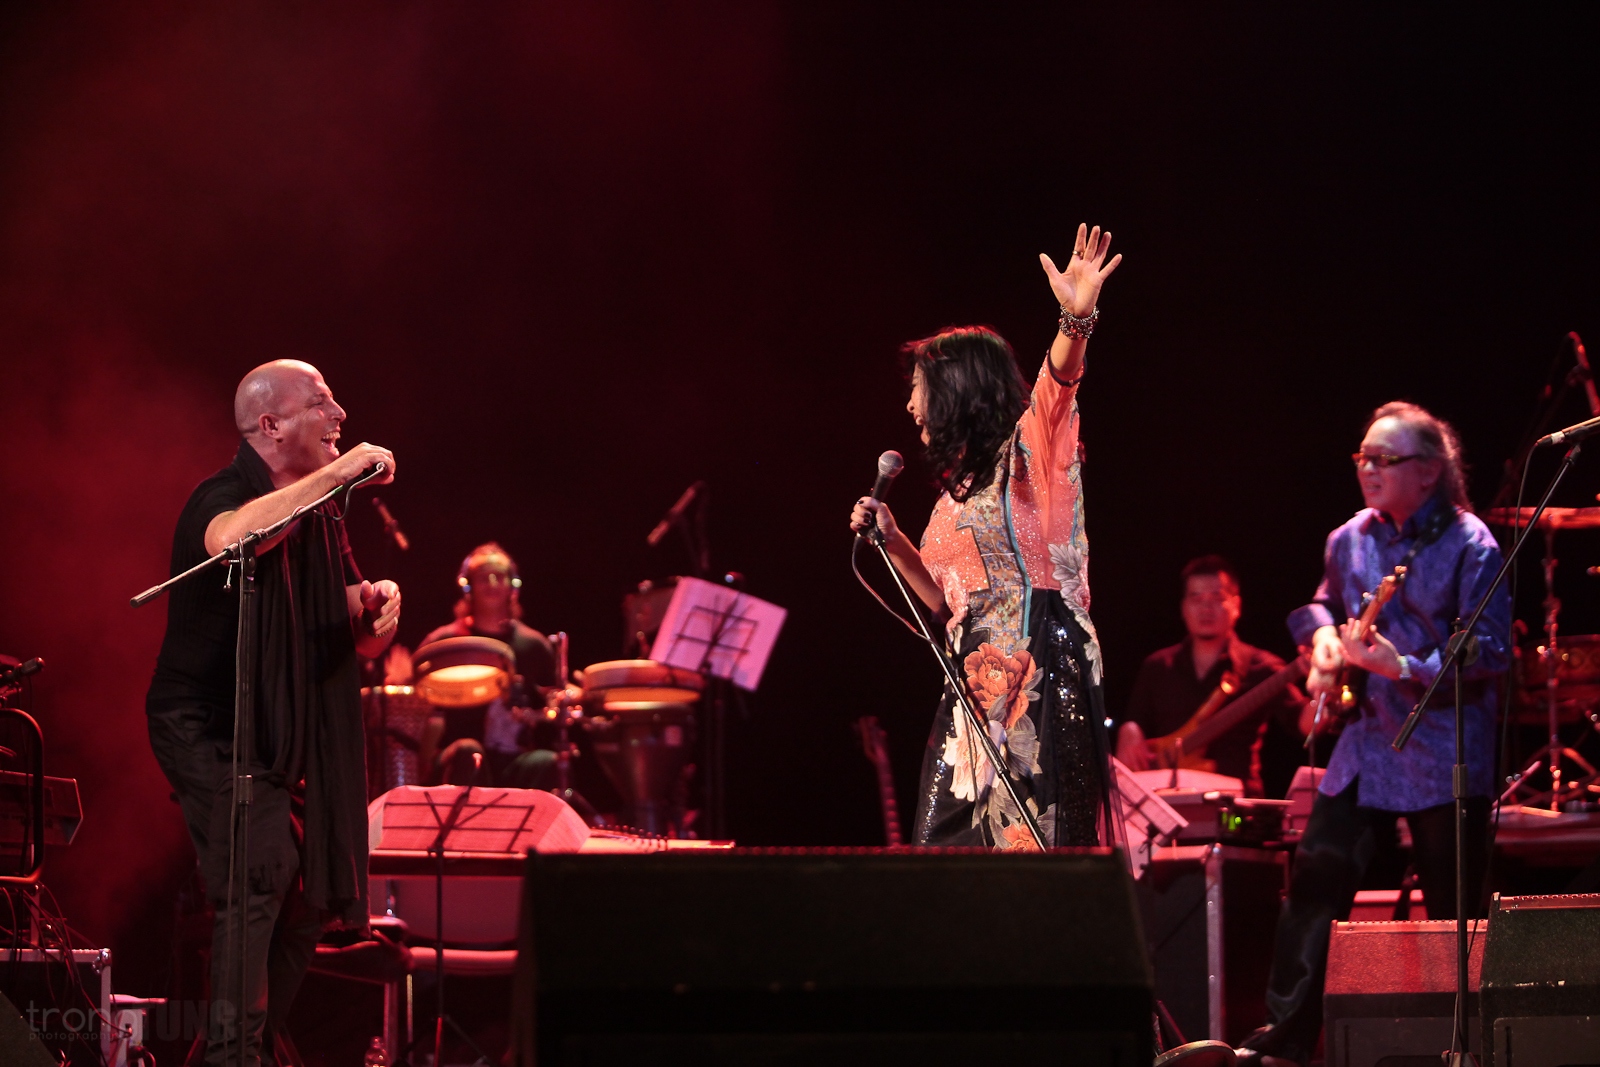 Dhafer Youssef, Thanh Lam, Nguyen Le